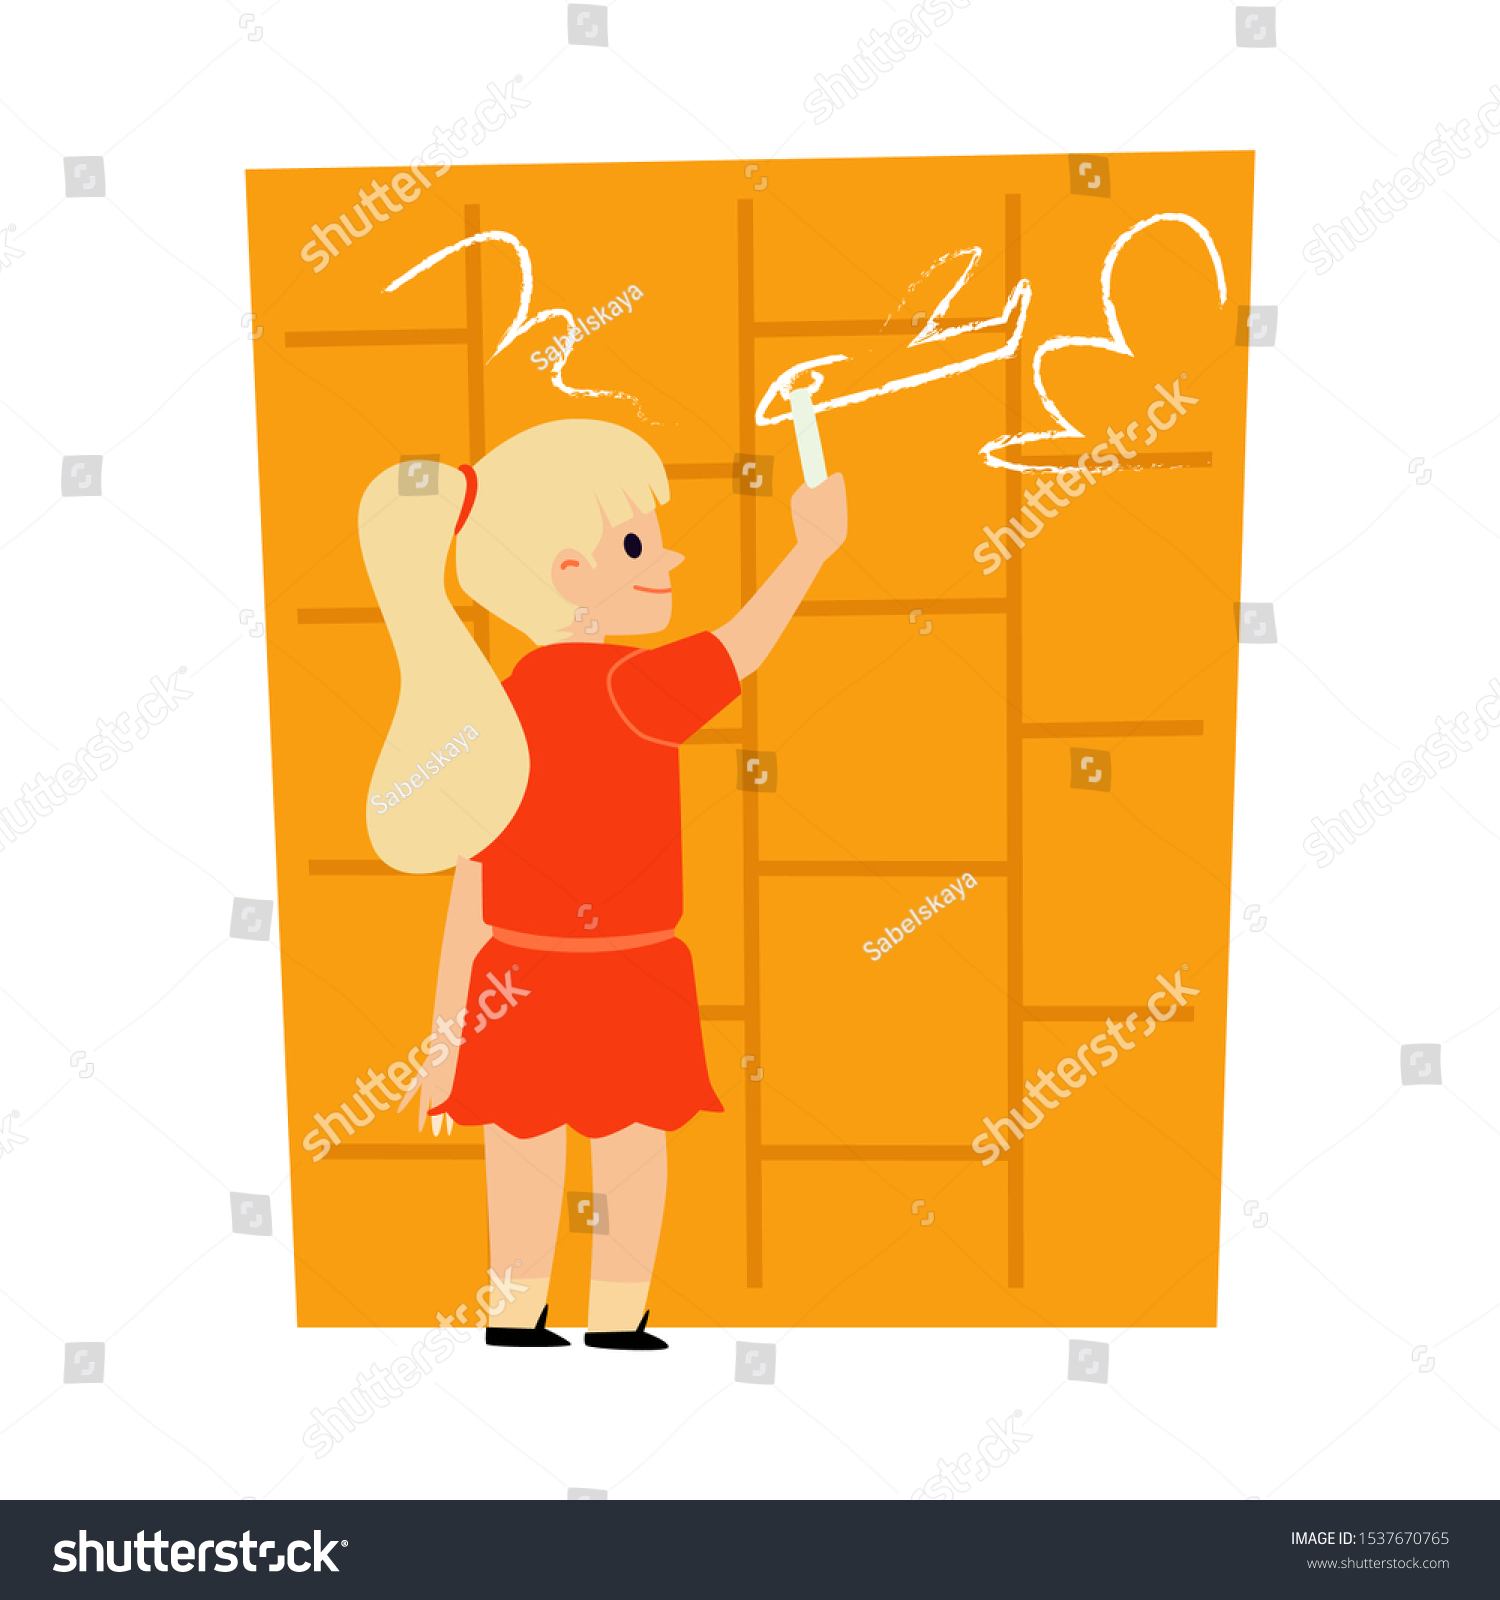 Cute Little Girl Drawing Airplane Dreaming Stock Vector Royalty Free 1537670765